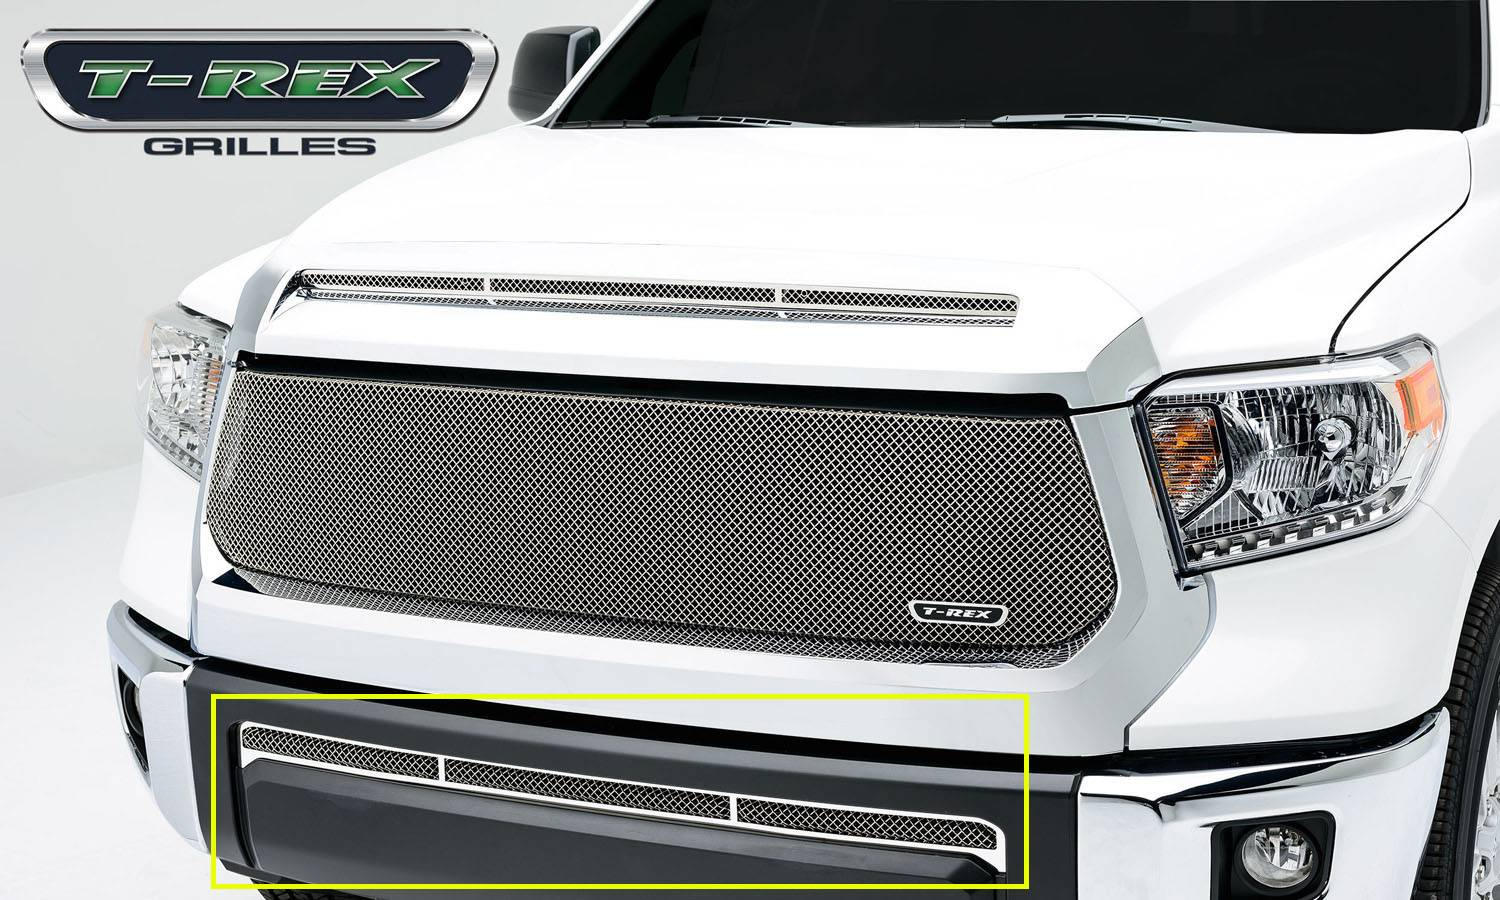 Toyota Tundra  Upper Class, Formed Mesh, Bumper Grille, Overlay, 1 Pc, Polished Stainless Steel - Pt # 55964